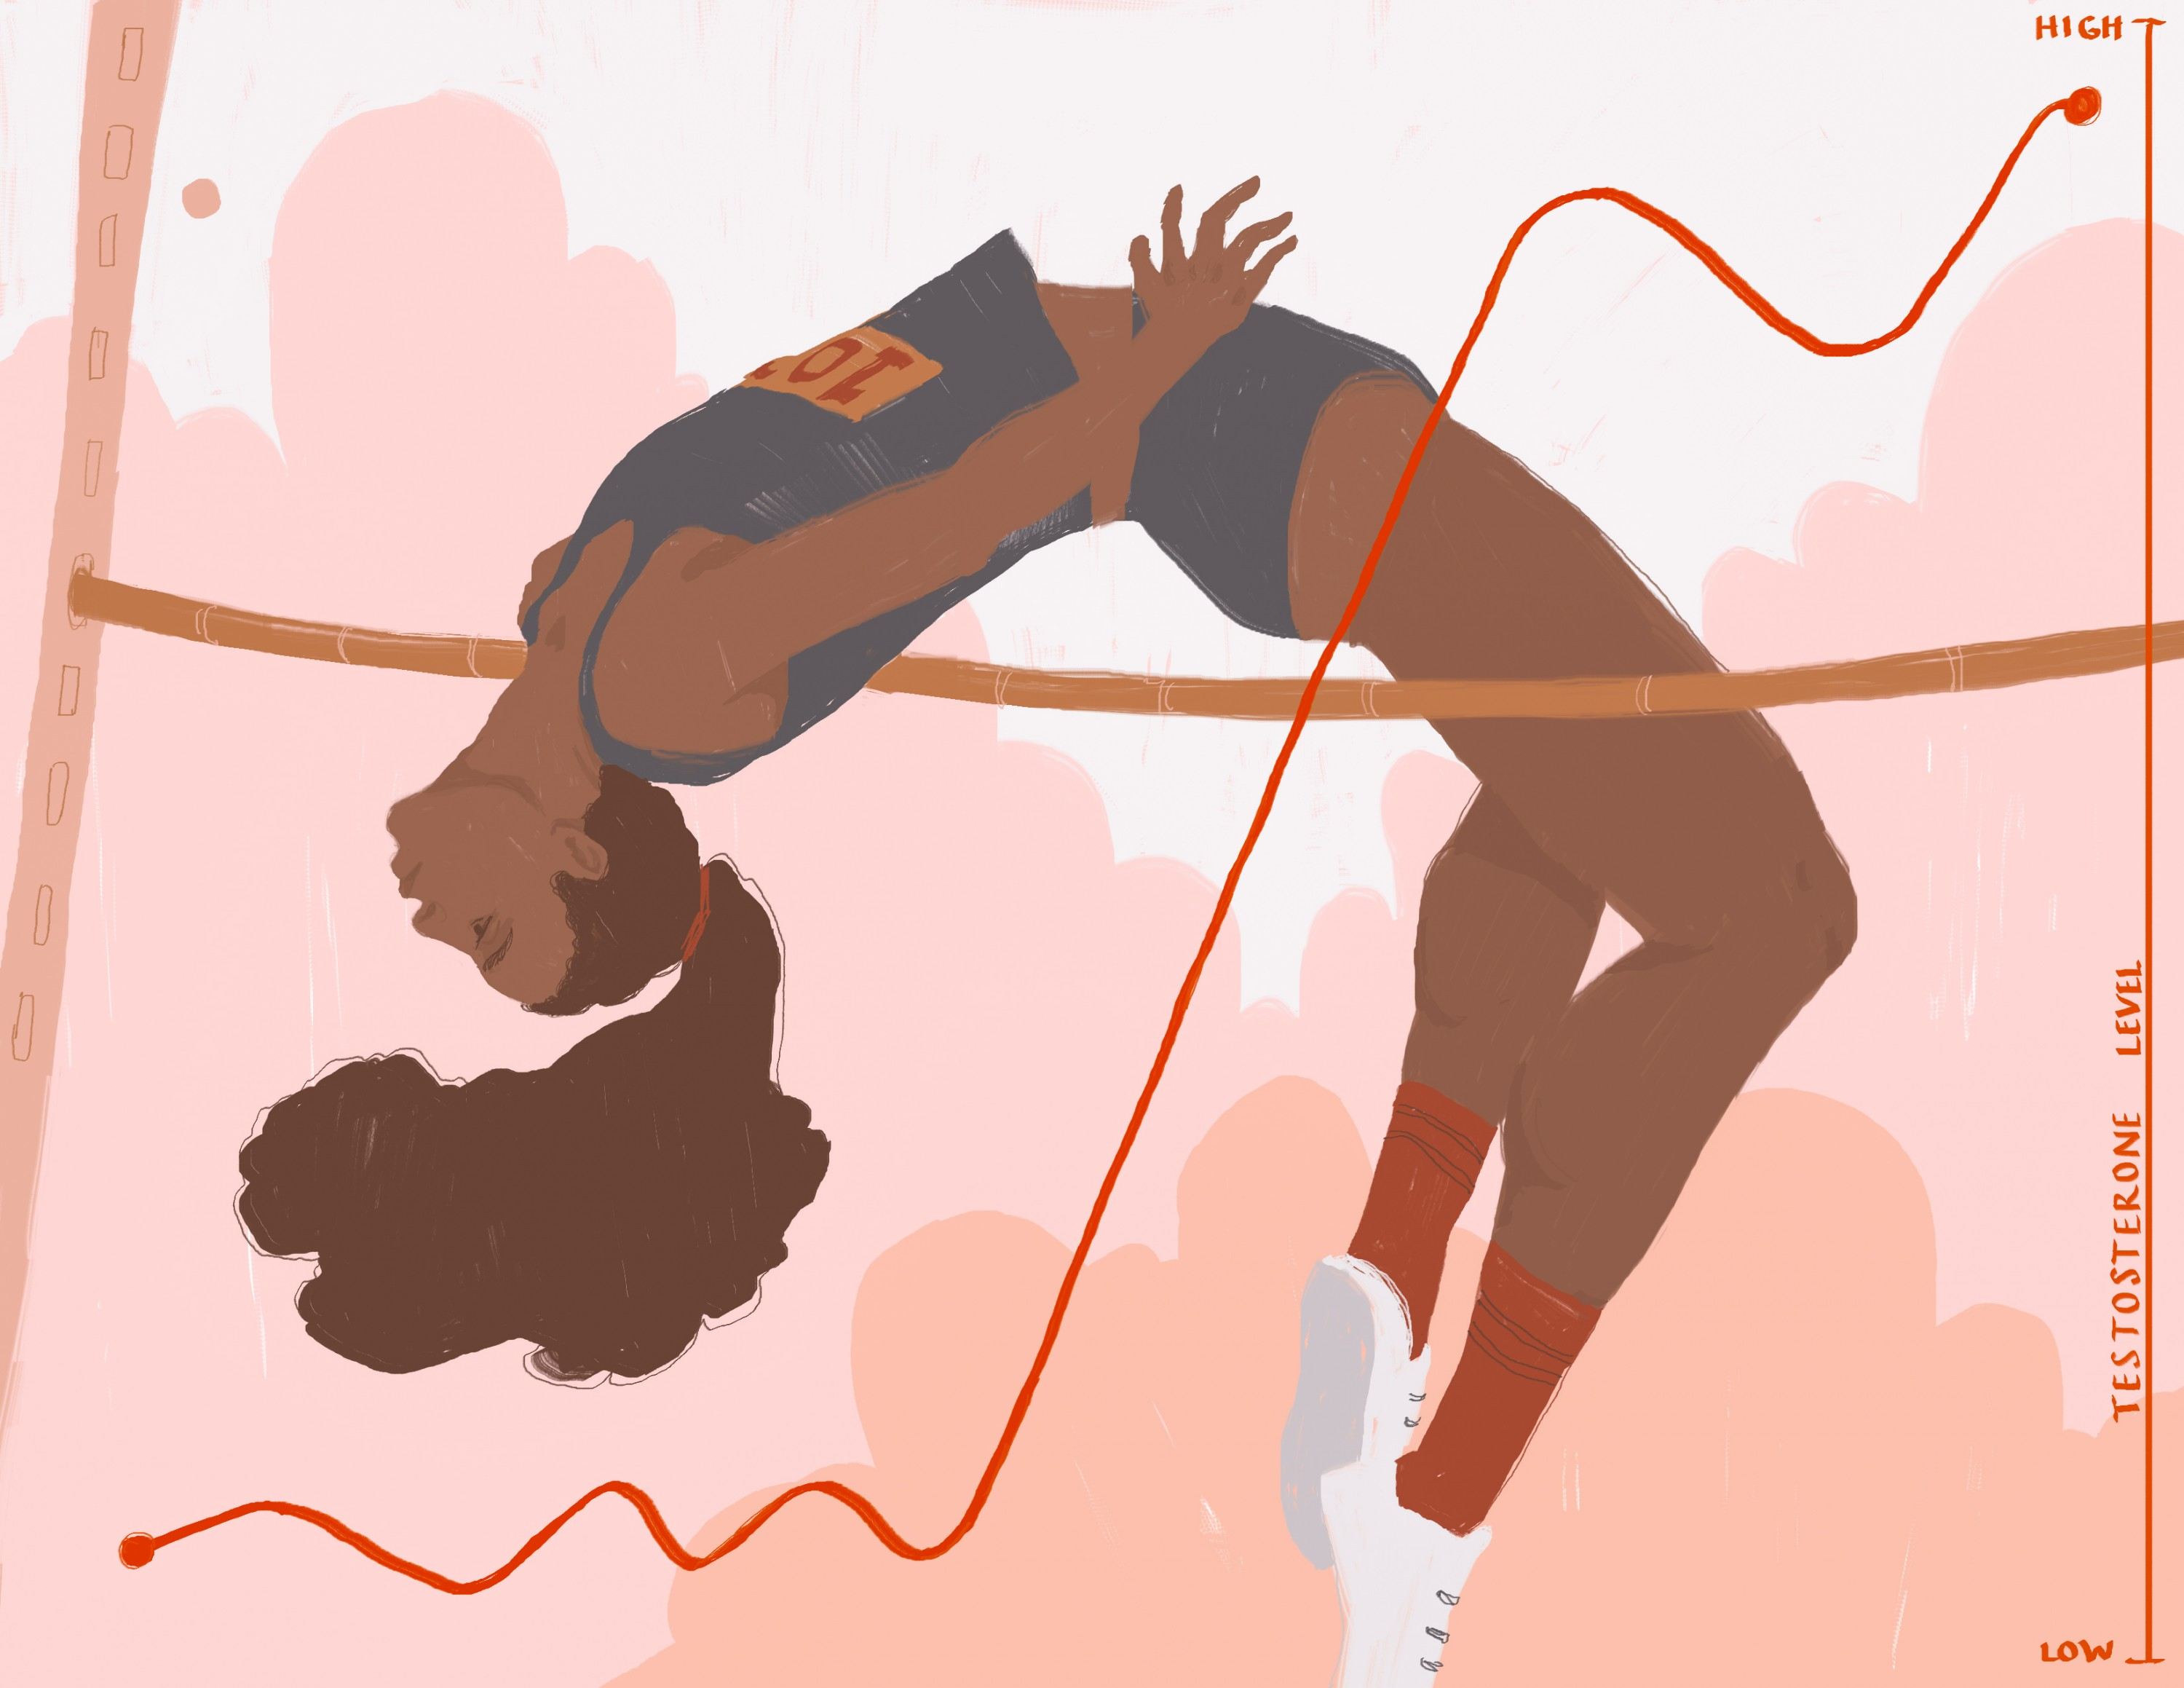 The image shows a woman of color jumping over the horizontal bar. The illustration is about the levels of testosterone in female athletics